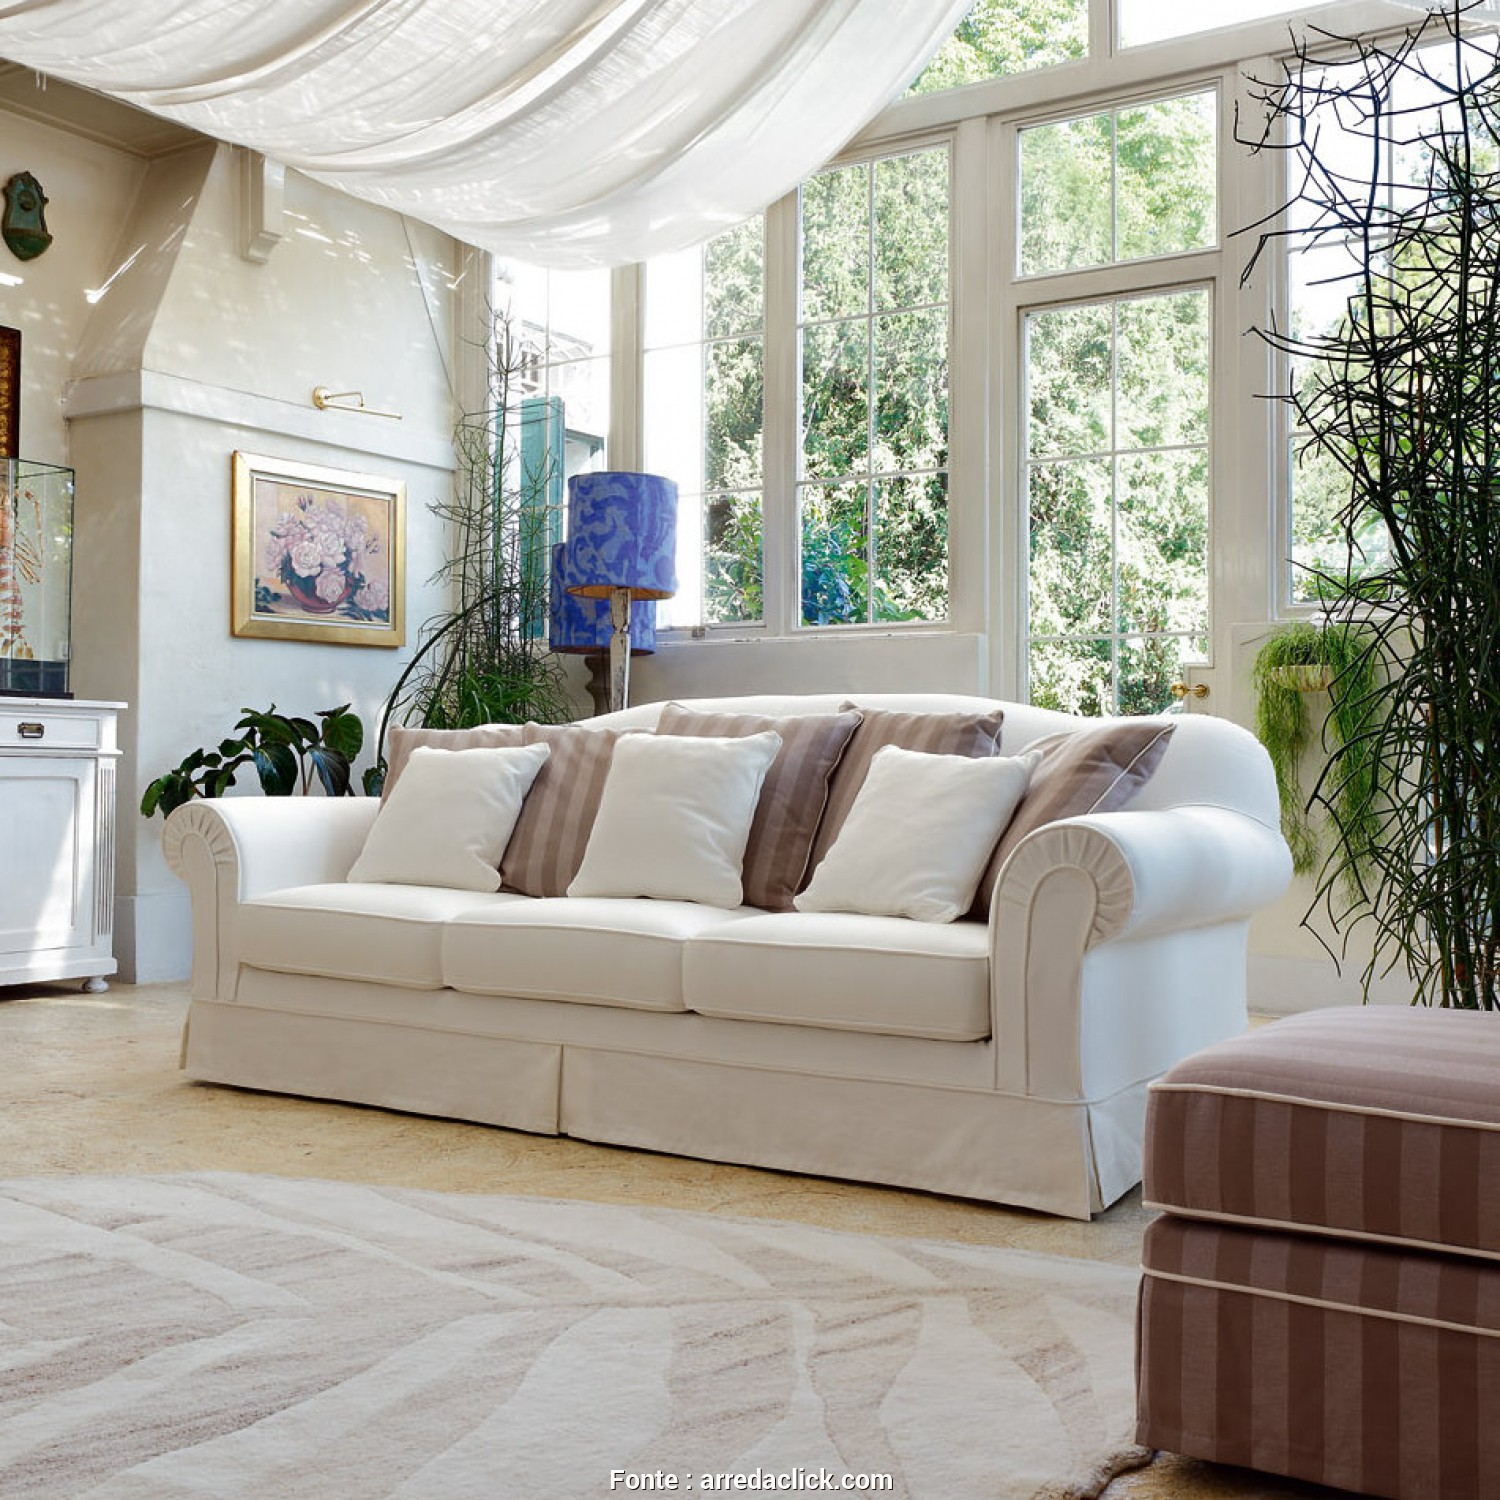 Bellissimo 4 Divani Letto Country Chic - Keever For Congress